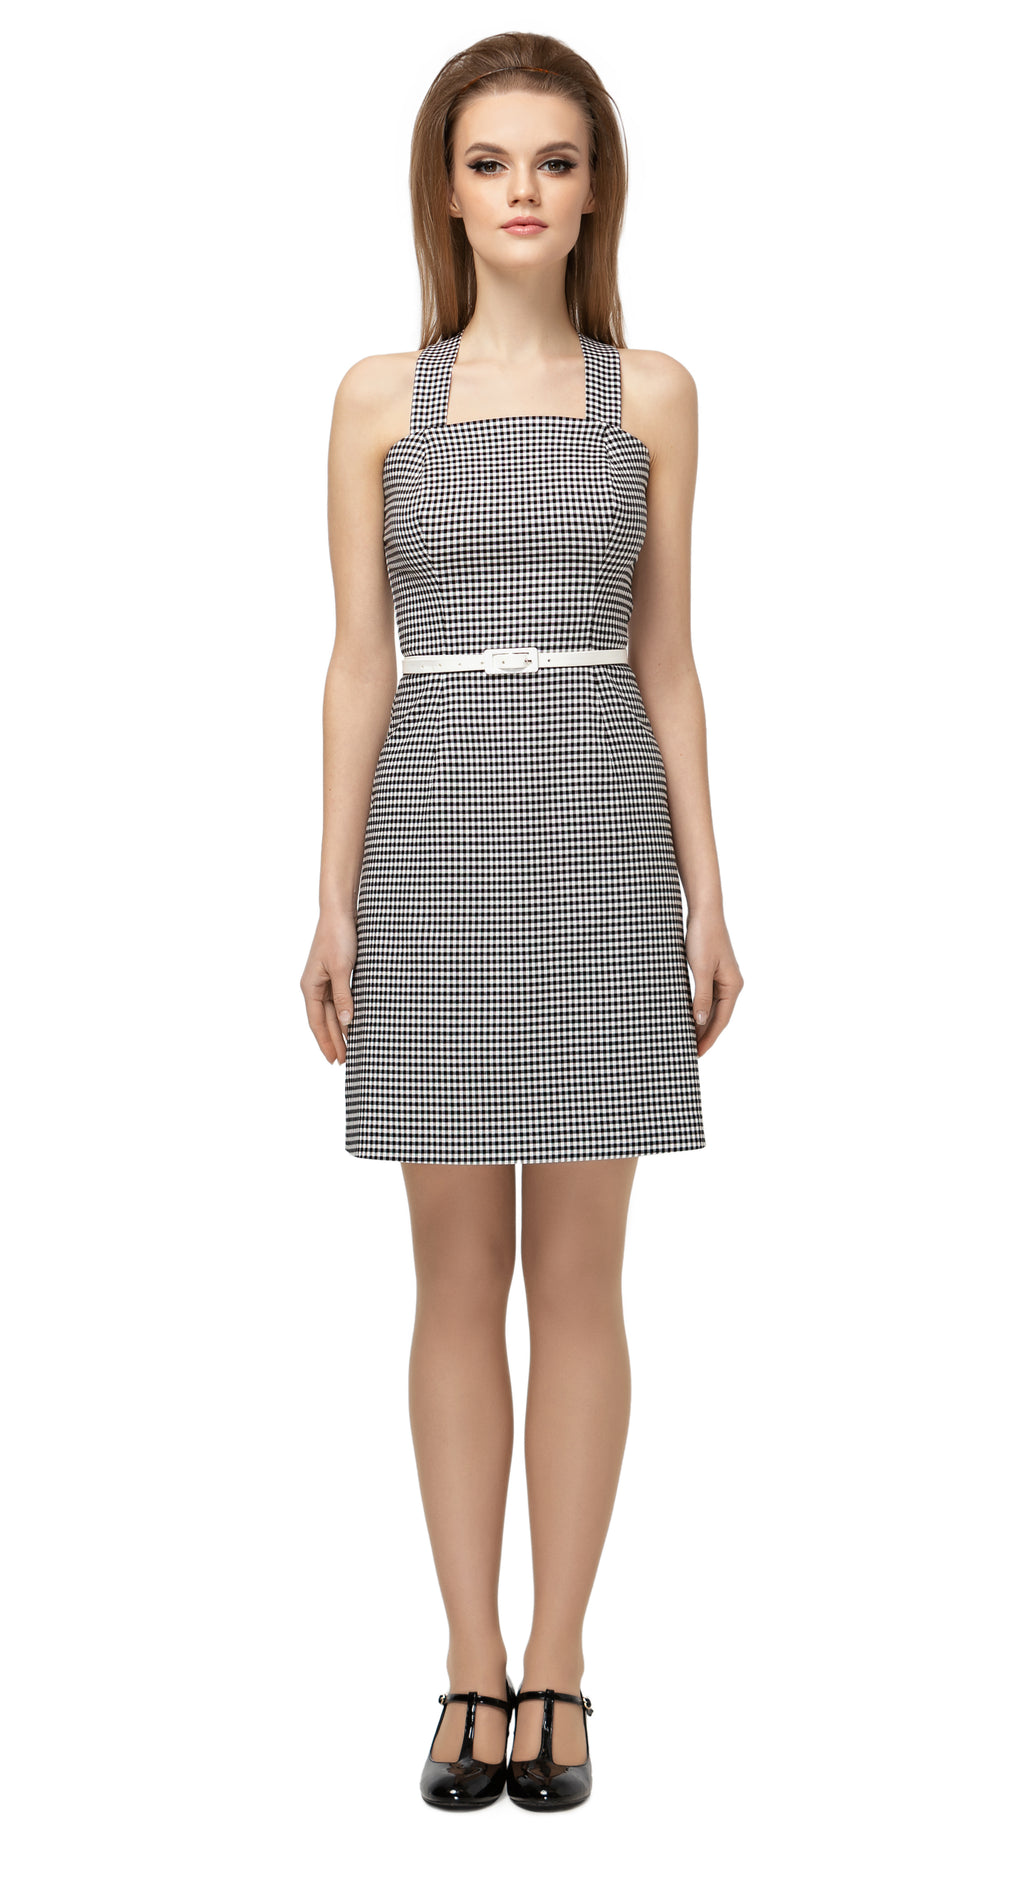 Fitted, classic gingham, Italian cotton dress. Detachable white vinyl belt and criss-cross shoulder strap back. Elegantly casual and comfortable for day or night.